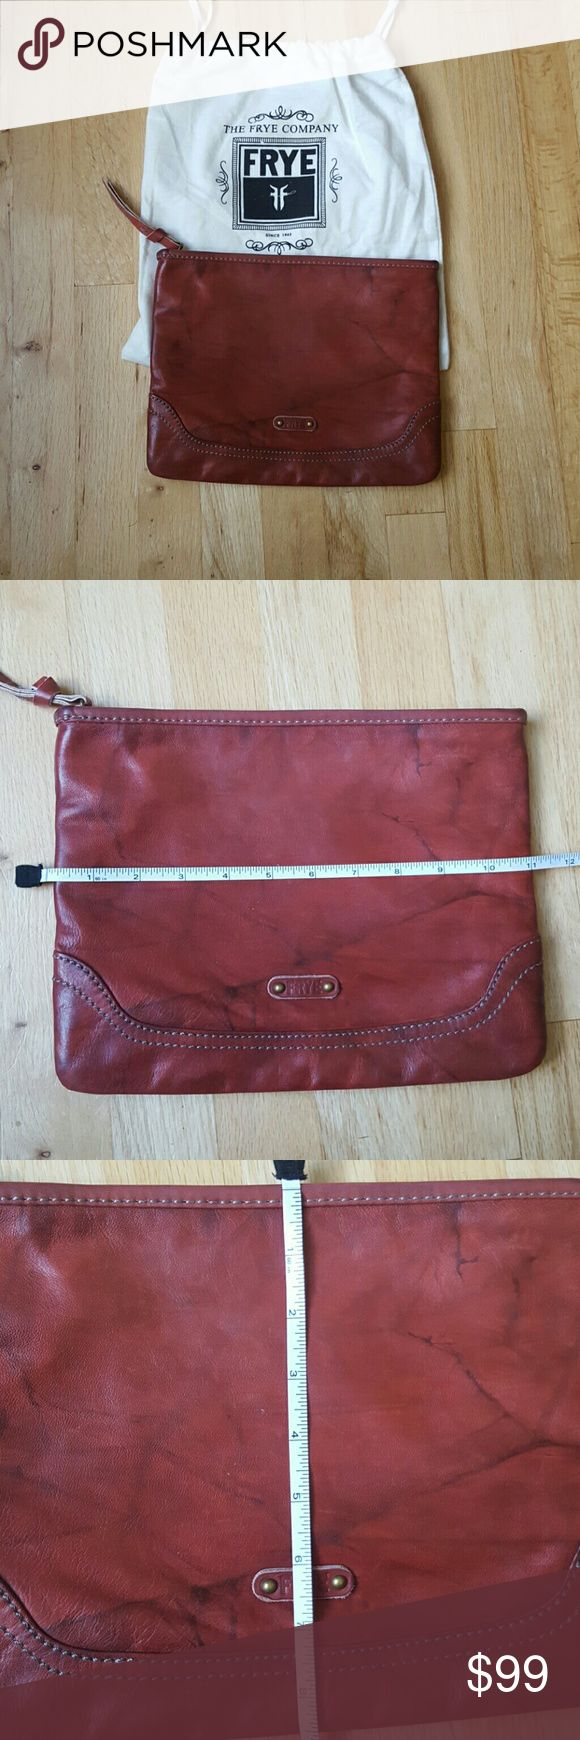 Frye Campus clutch - saddle Like new condition.  Comes with dust bag.  Clean on the inside.   Gorgeous frye quality clutch.  Great for small electronics, mini ipad, kindle, etc.  Measurements shown in pictures Frye Bags